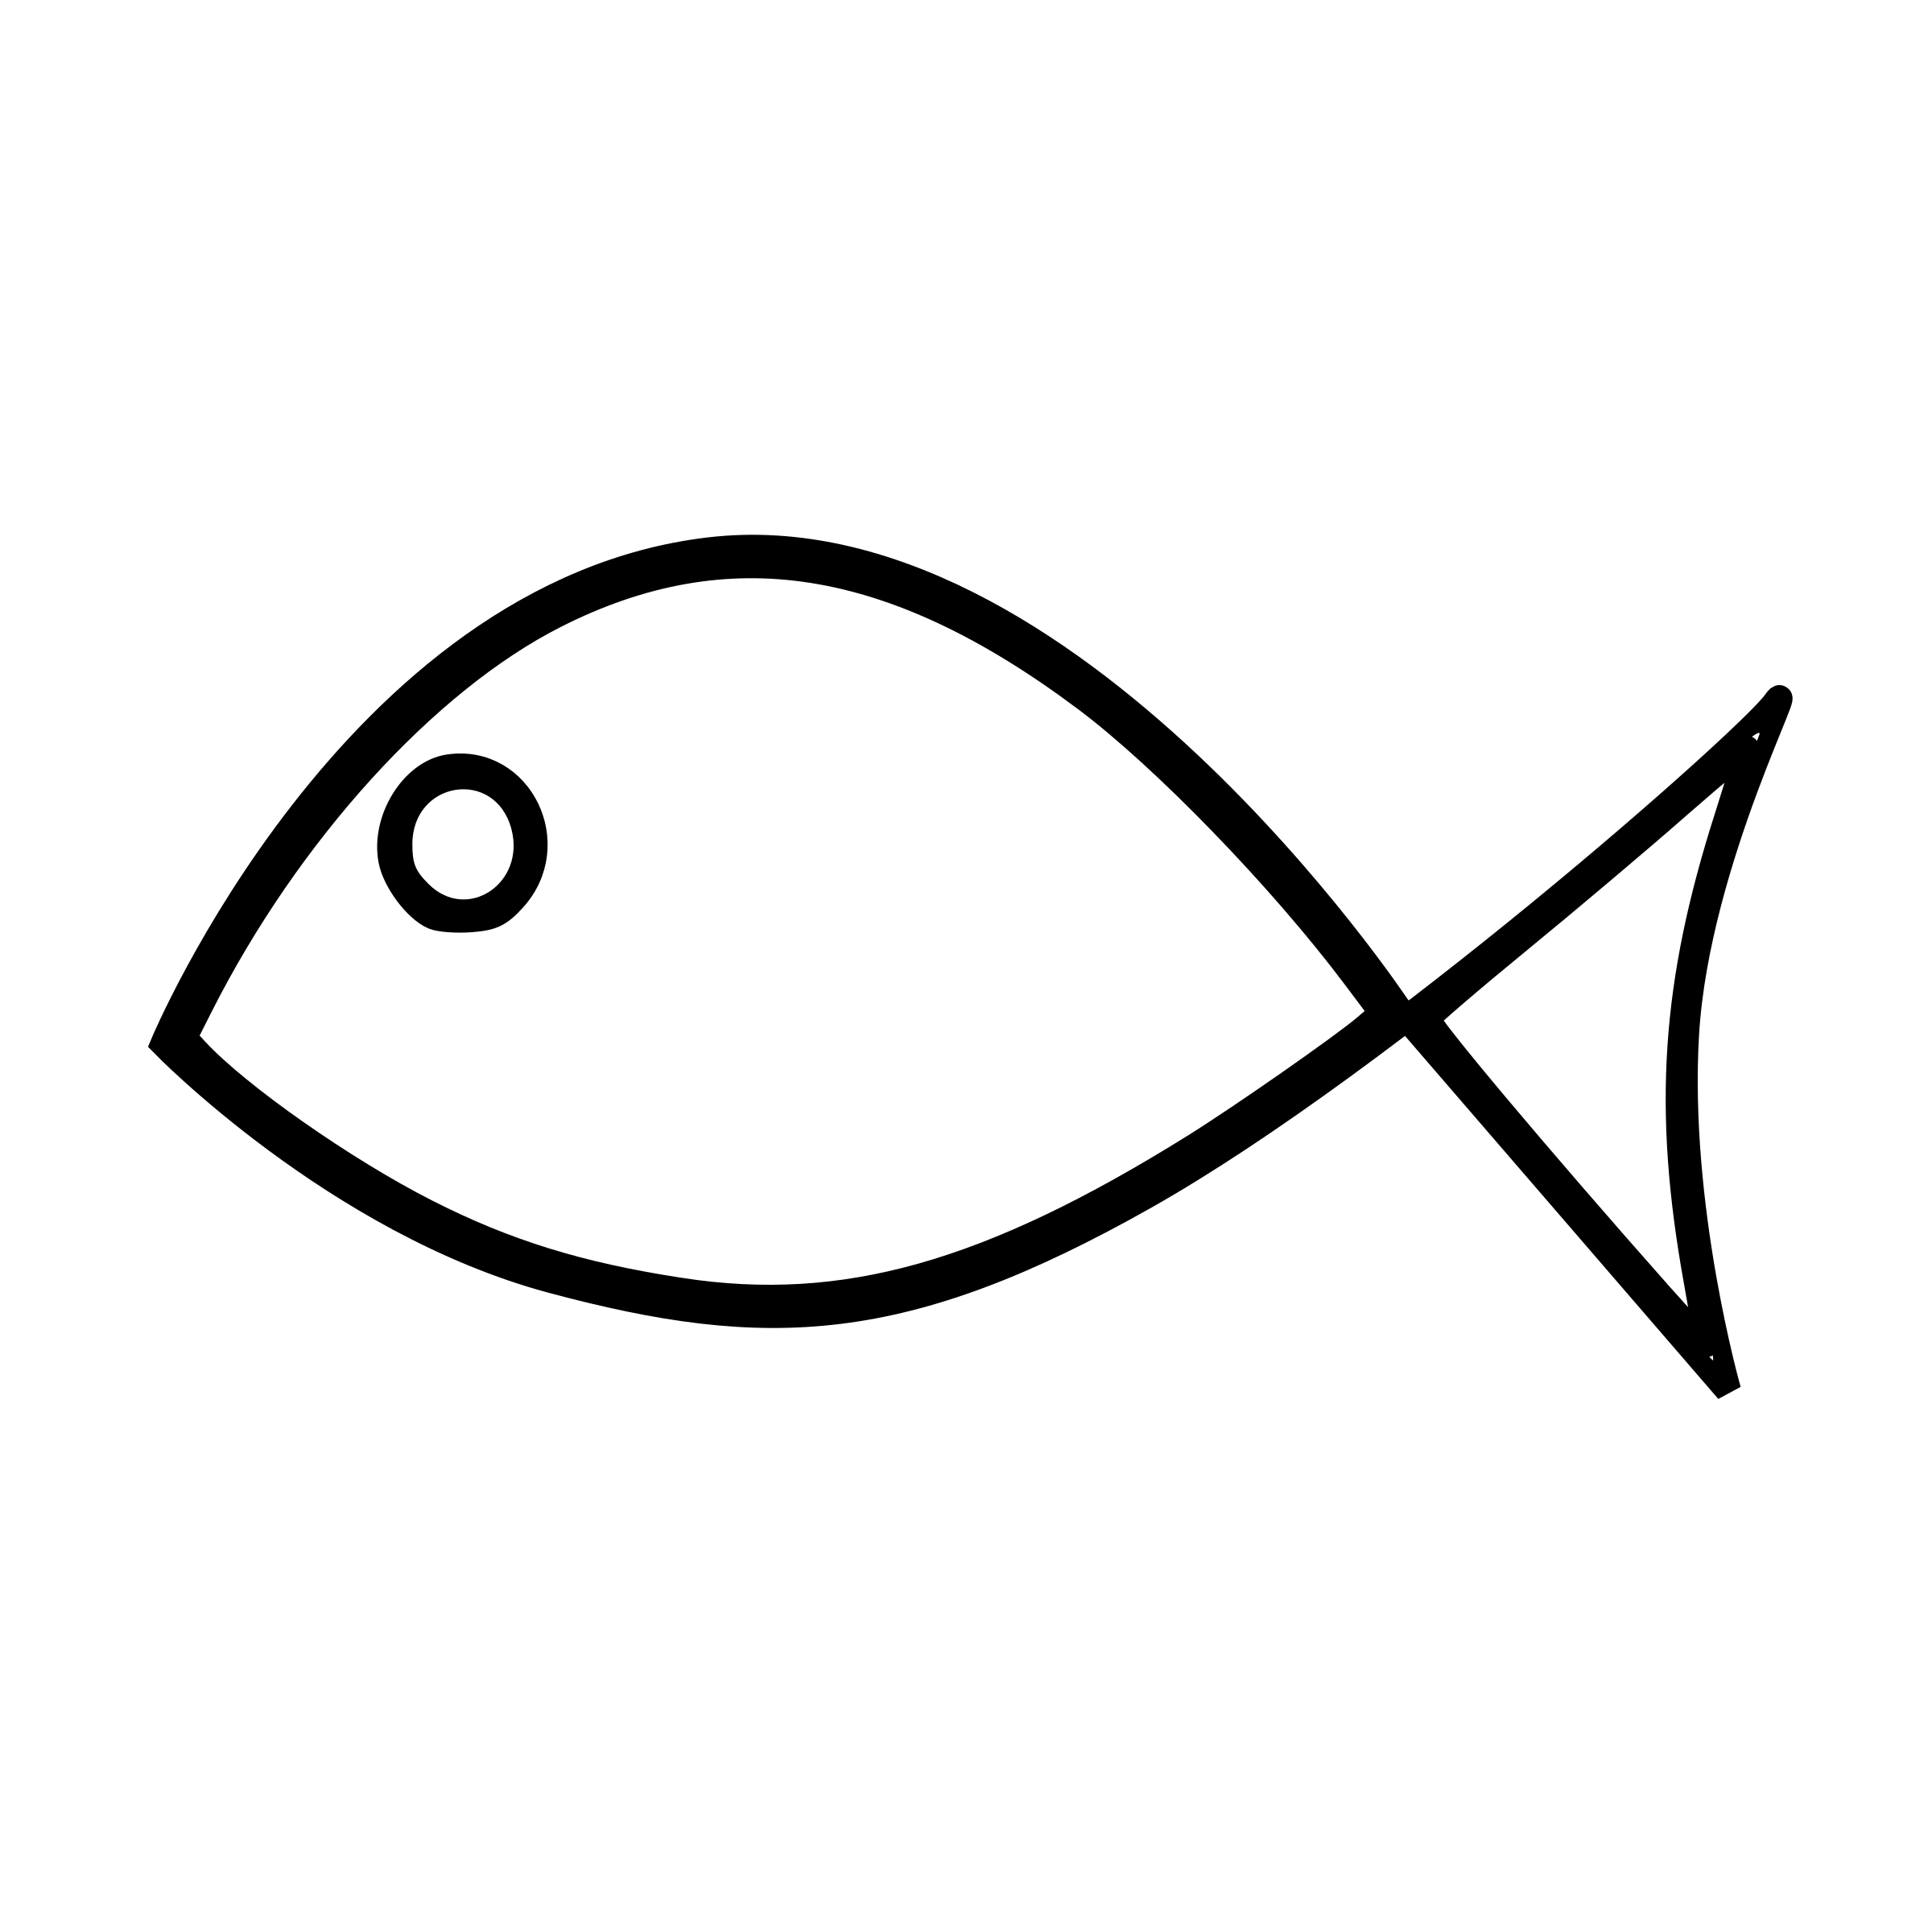 Fish with hook in mouth clipart svg free Clipart - fish svg free